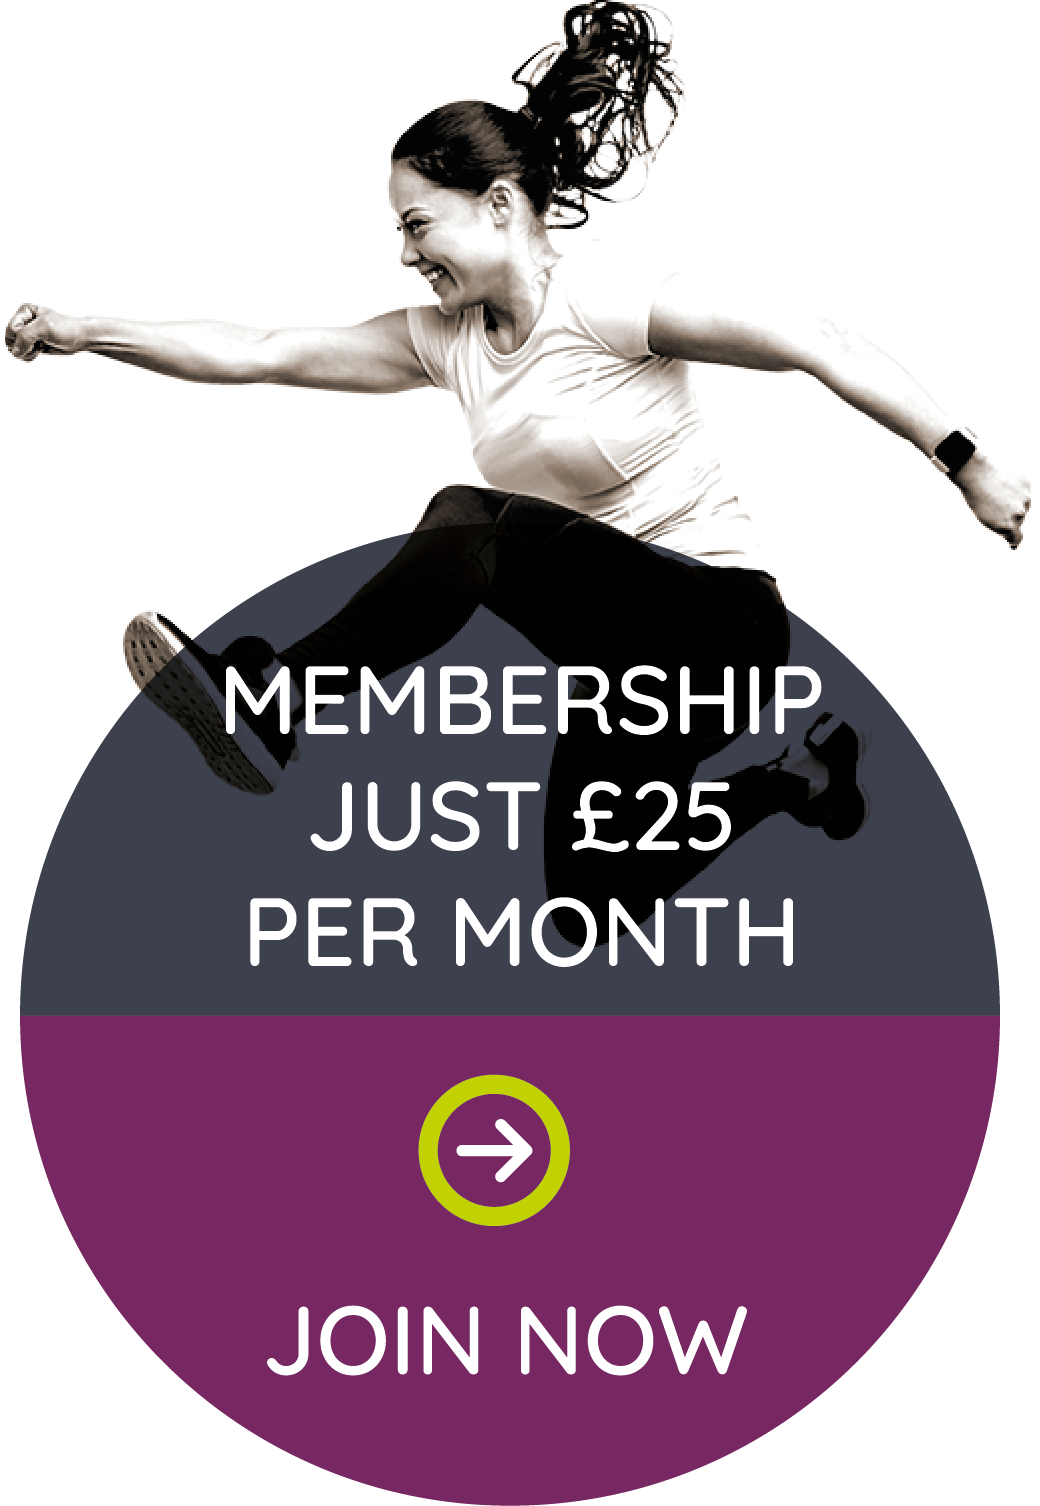 Membership just �23 per month. Join now.